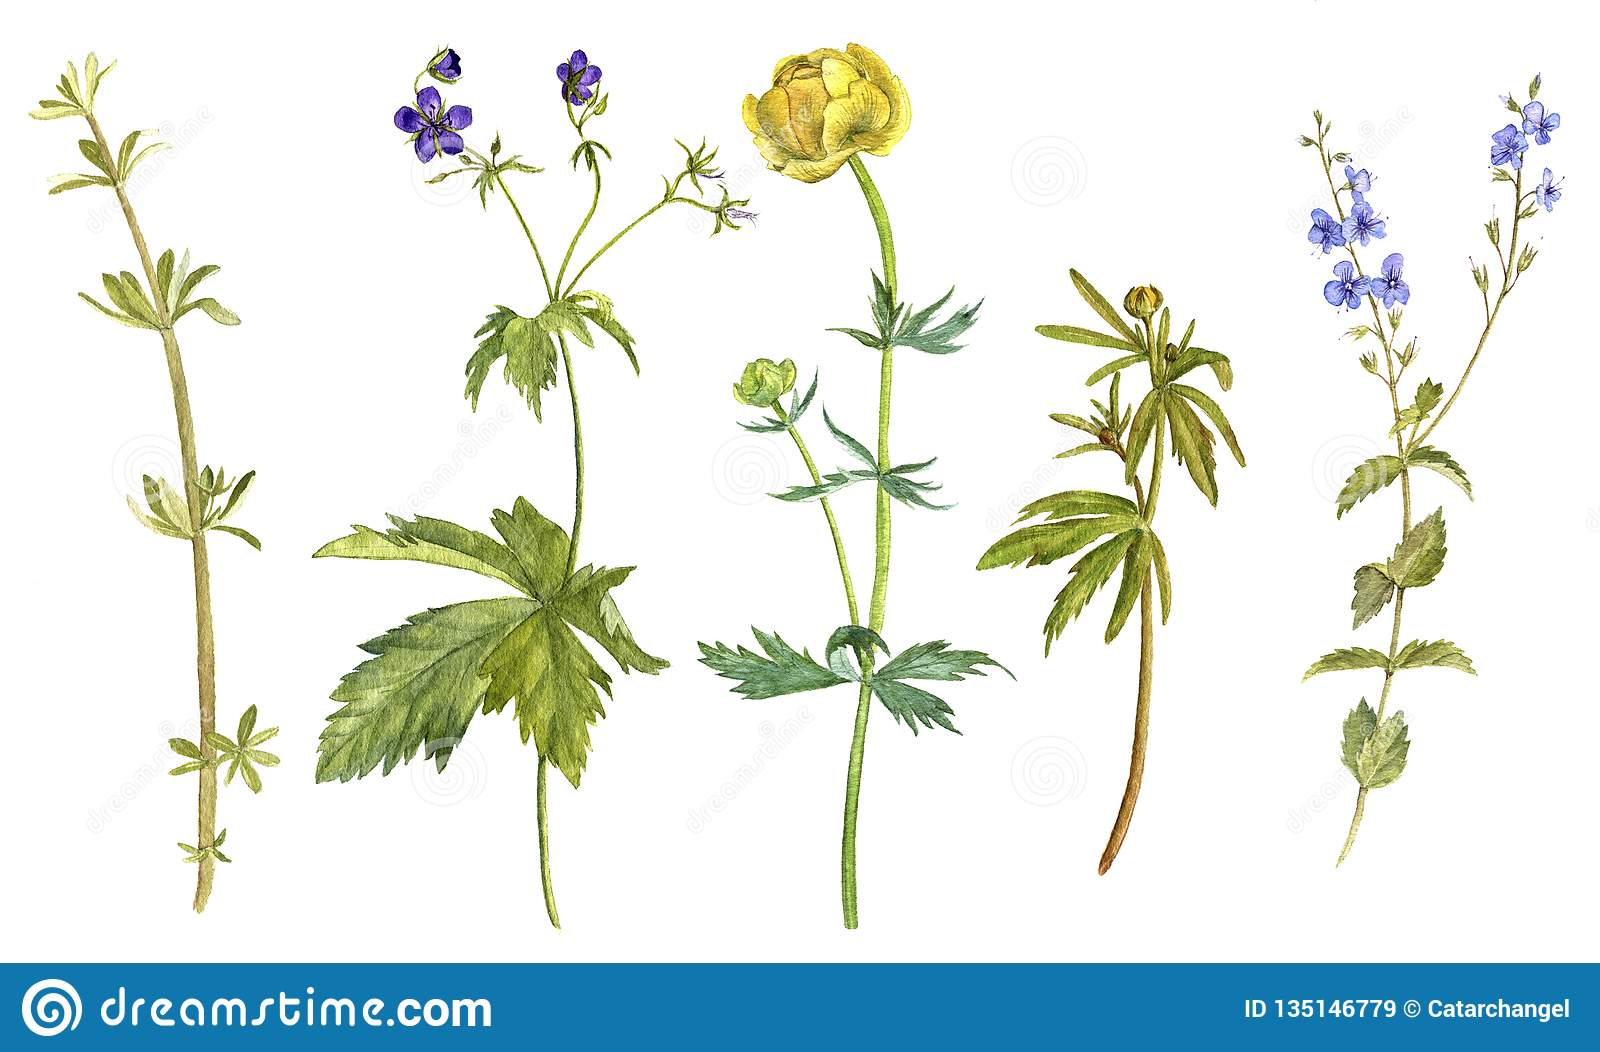 Watercolor Drawing Wild Flowers And Plants Stock Illustration Illustration Of Graphic Natural 135146779